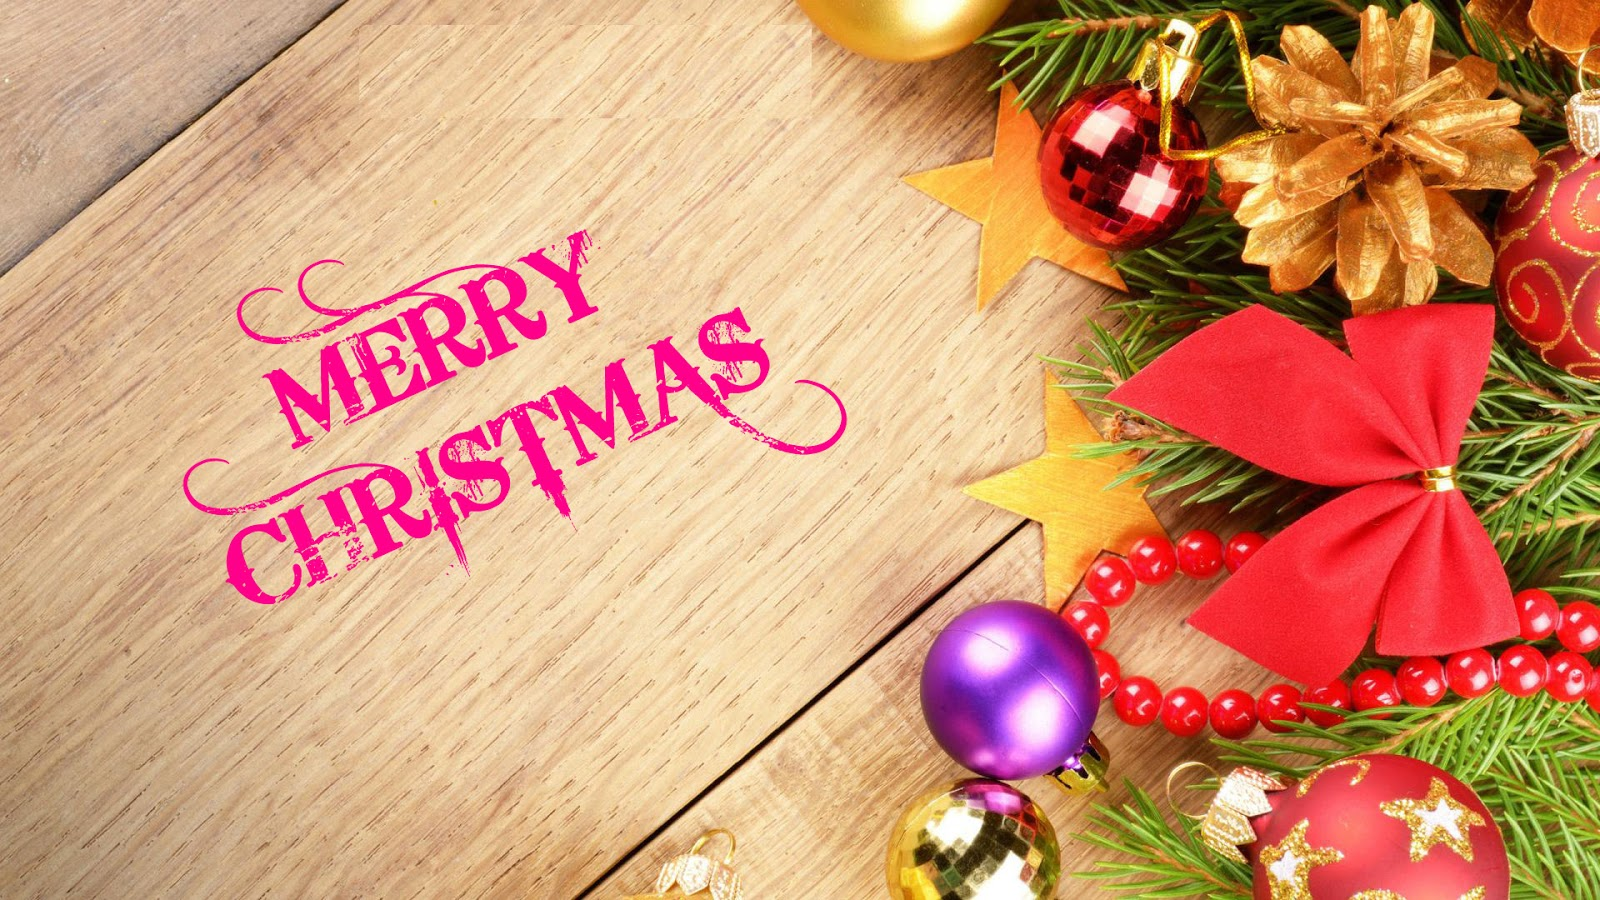 Free Wallpapers Merry Christmas Greetings